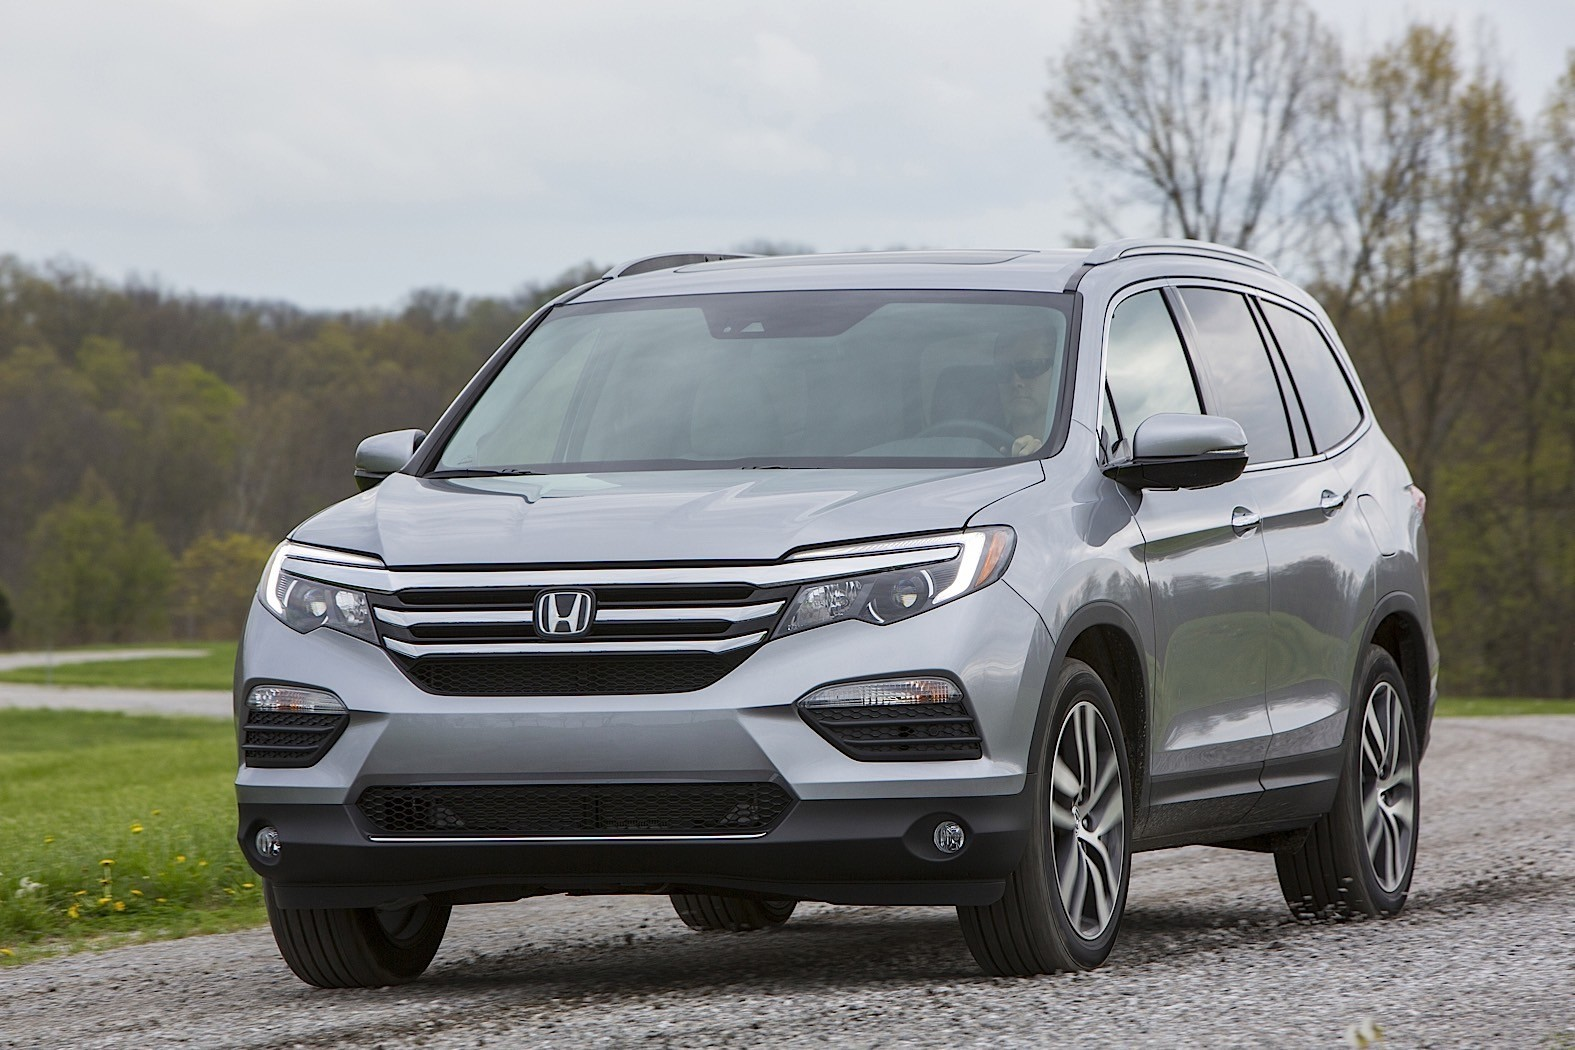 2016 Honda Pilot Review - autoevolution